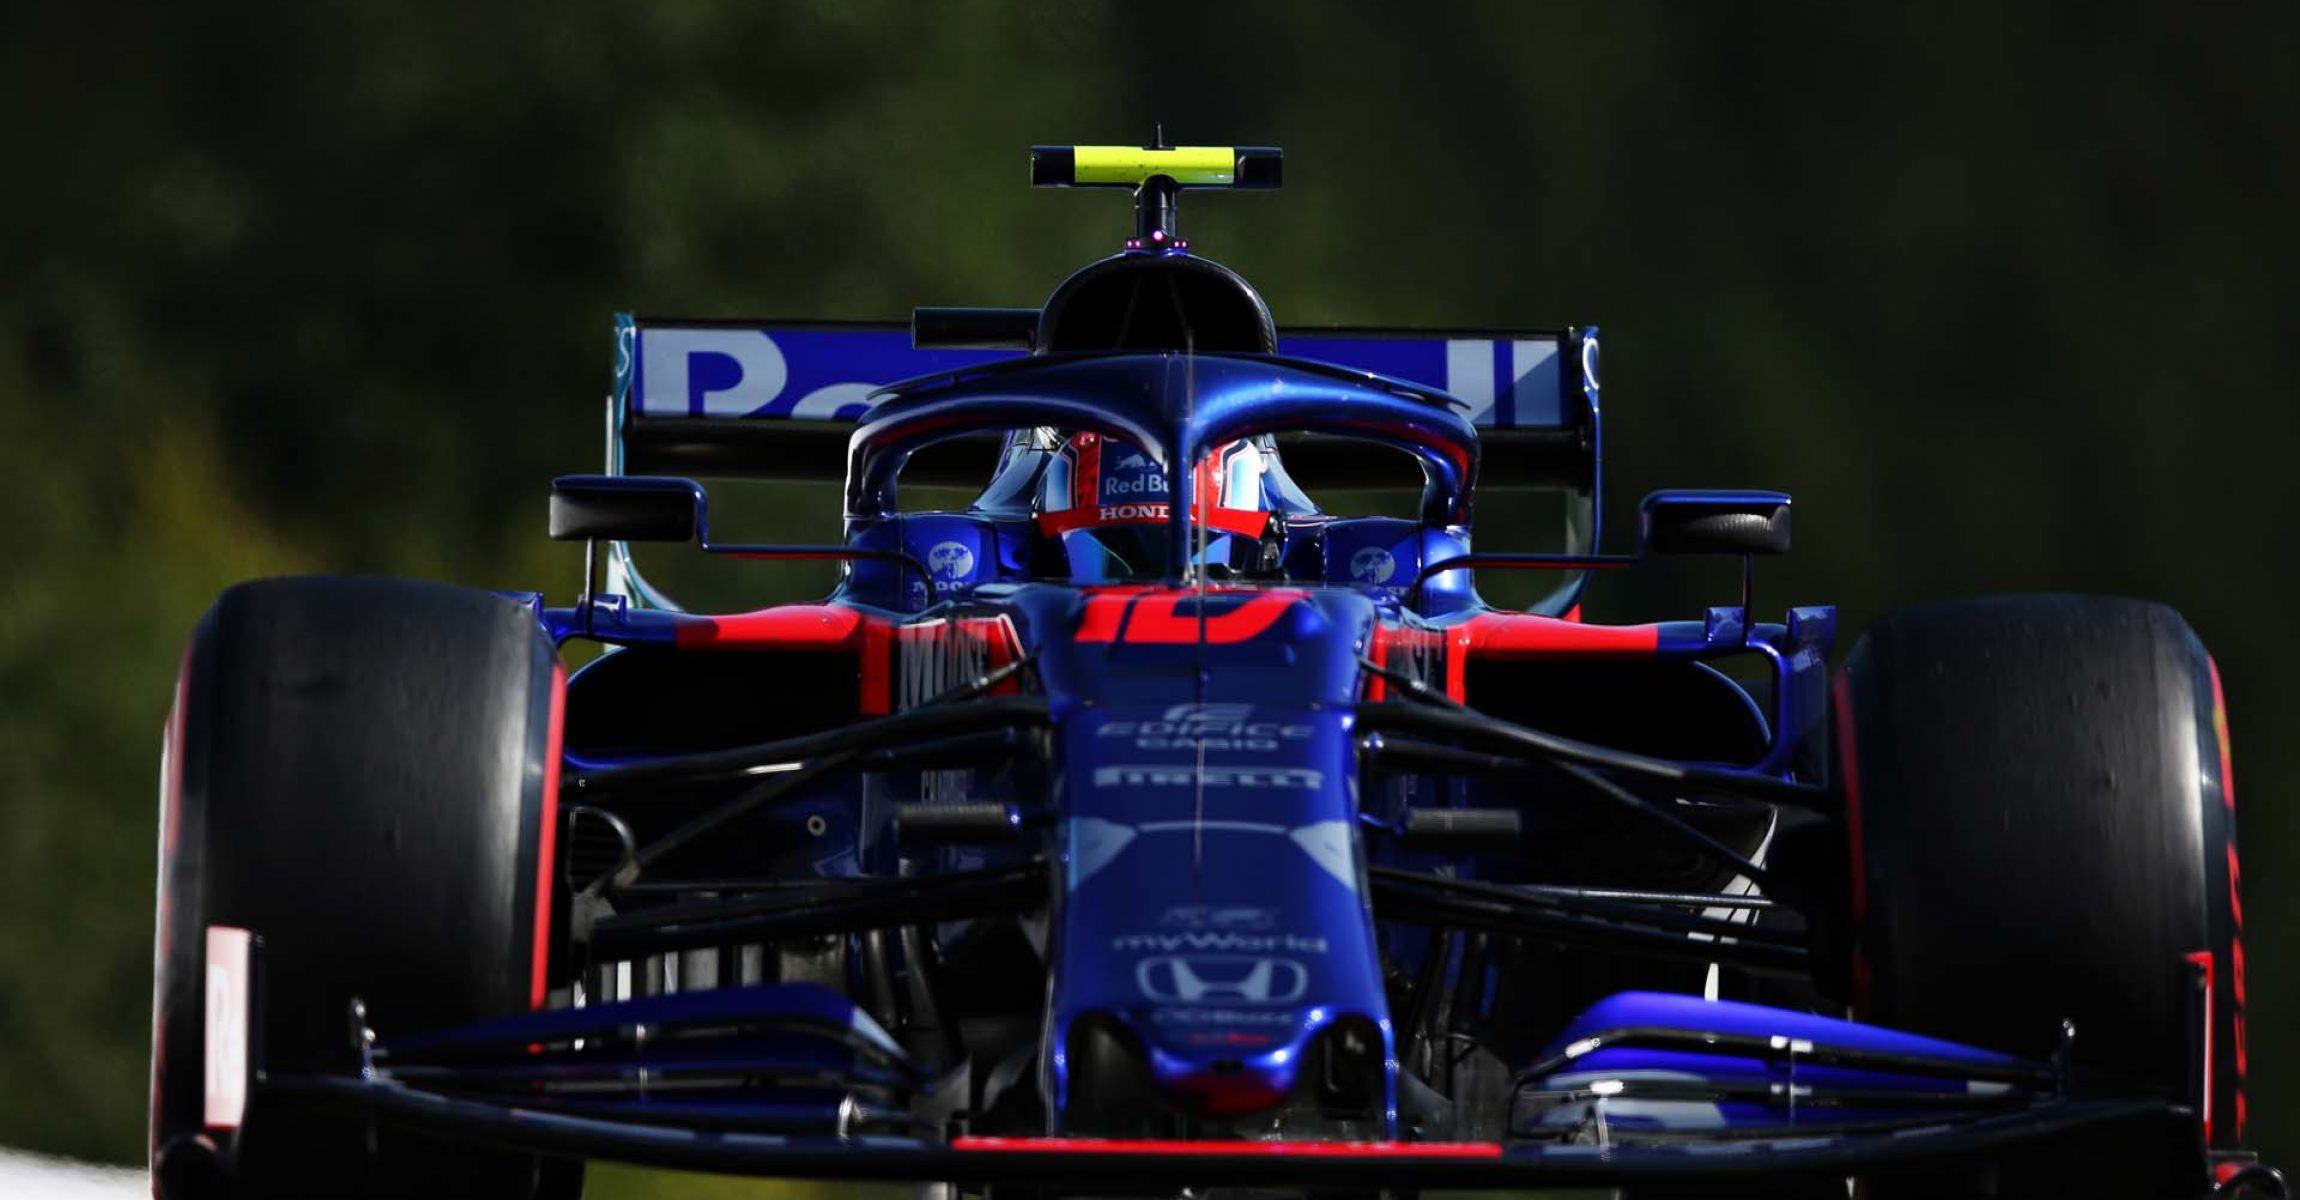 SPA, BELGIUM - AUGUST 30: Pierre Gasly of France driving the (10) Scuderia Toro Rosso STR14 Honda on track during practice for the F1 Grand Prix of Belgium at Circuit de Spa-Francorchamps on August 30, 2019 in Spa, Belgium. (Photo by Charles Coates/Getty Images) // Getty Images / Red Bull Content Pool  // AP-21DWYFR311W11 // Usage for editorial use only //